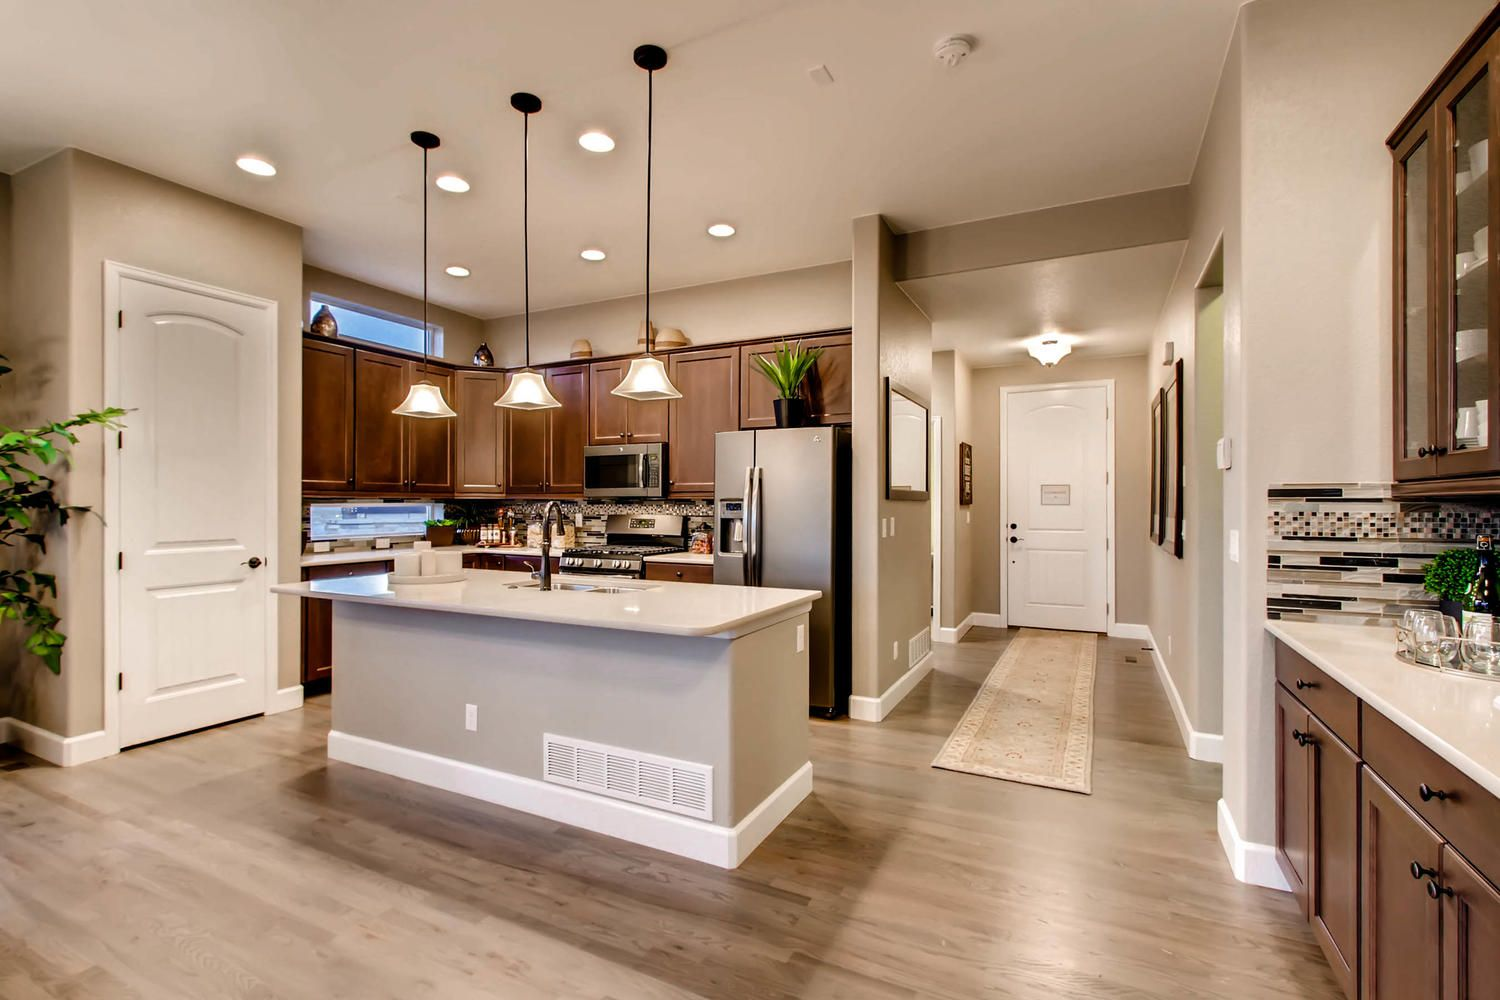 Kitchen Celebration Floor Plan Built By Classic Homes Model Home Is Located In Banning Lewis Ranch Classic House Floor Plans Ranch Style